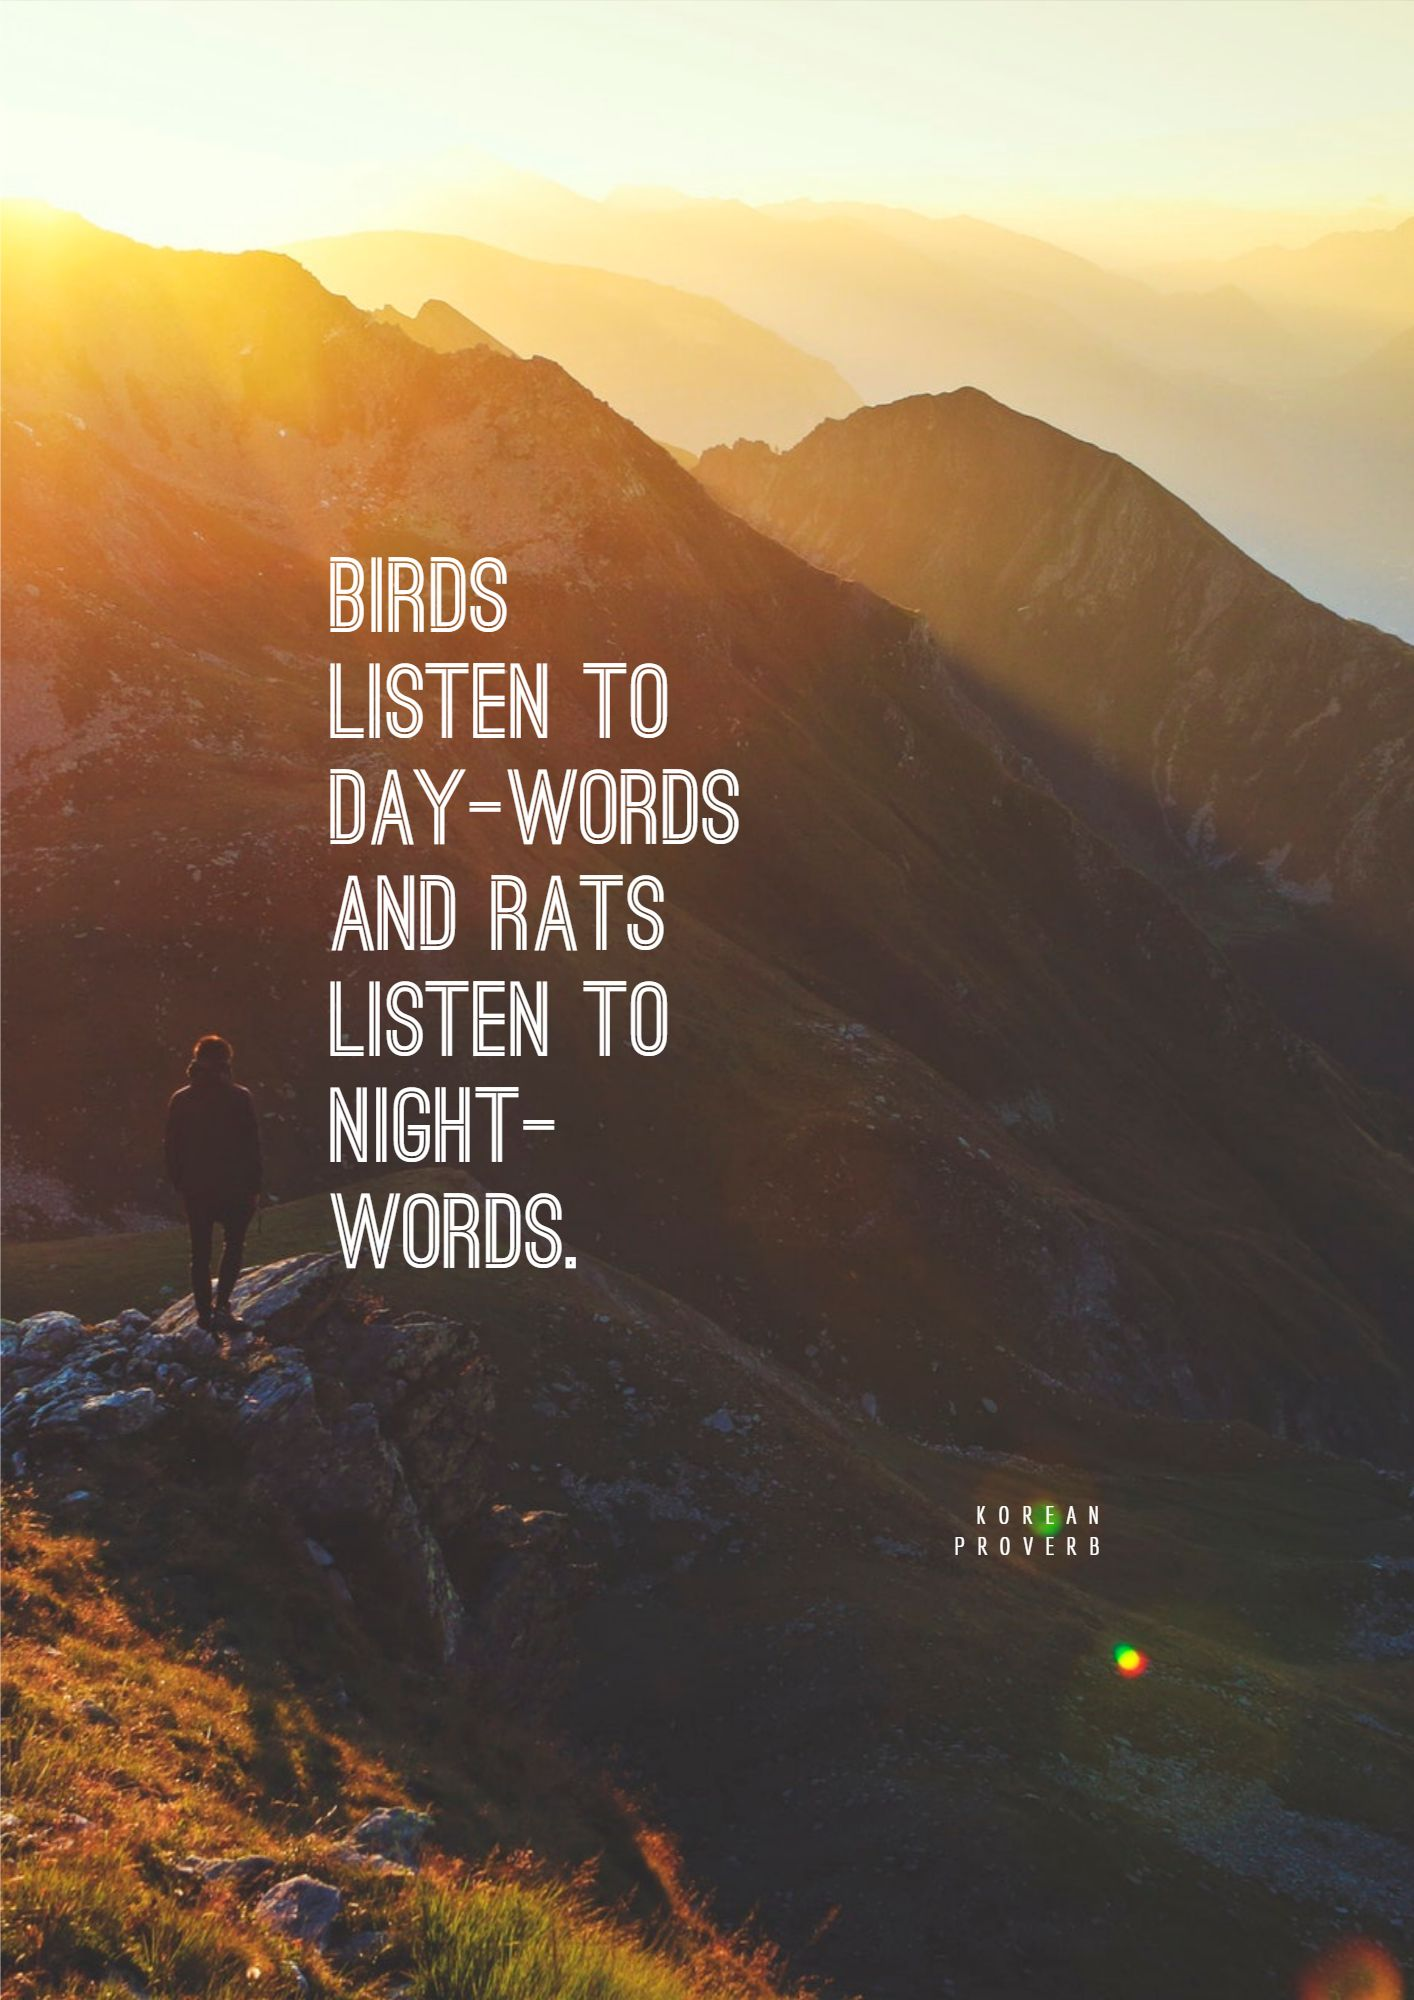 Quotes image of Birds listen to day-words and rats listen to night-words.